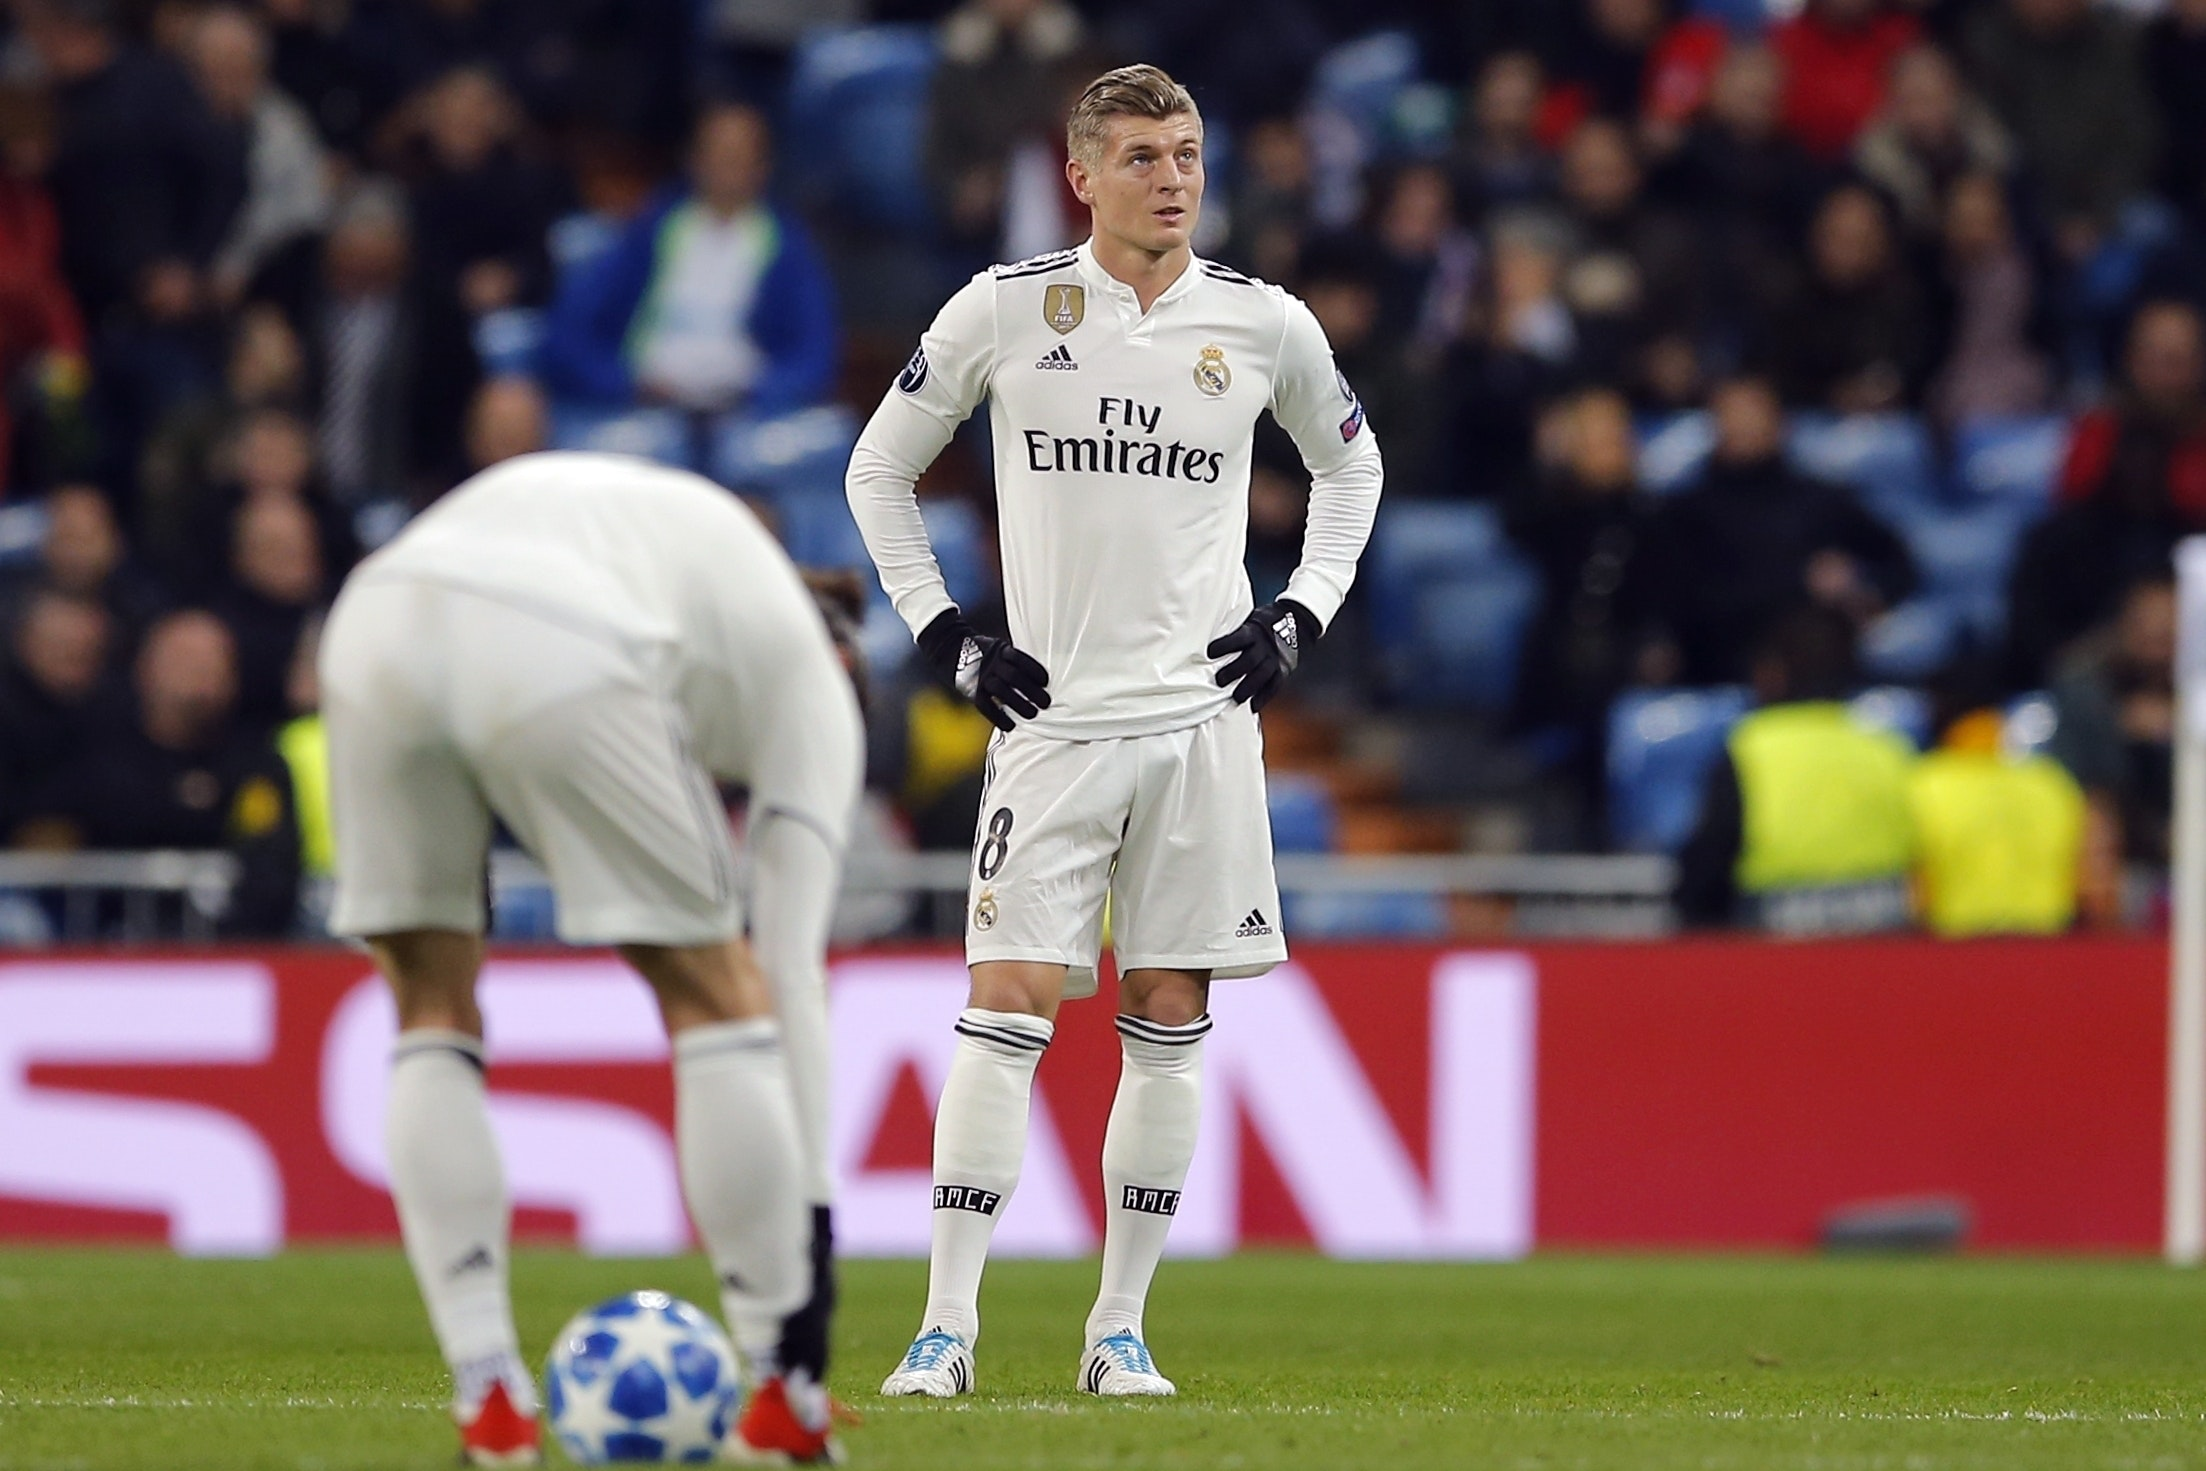 Real Madrid's season has been one of continuing frustration